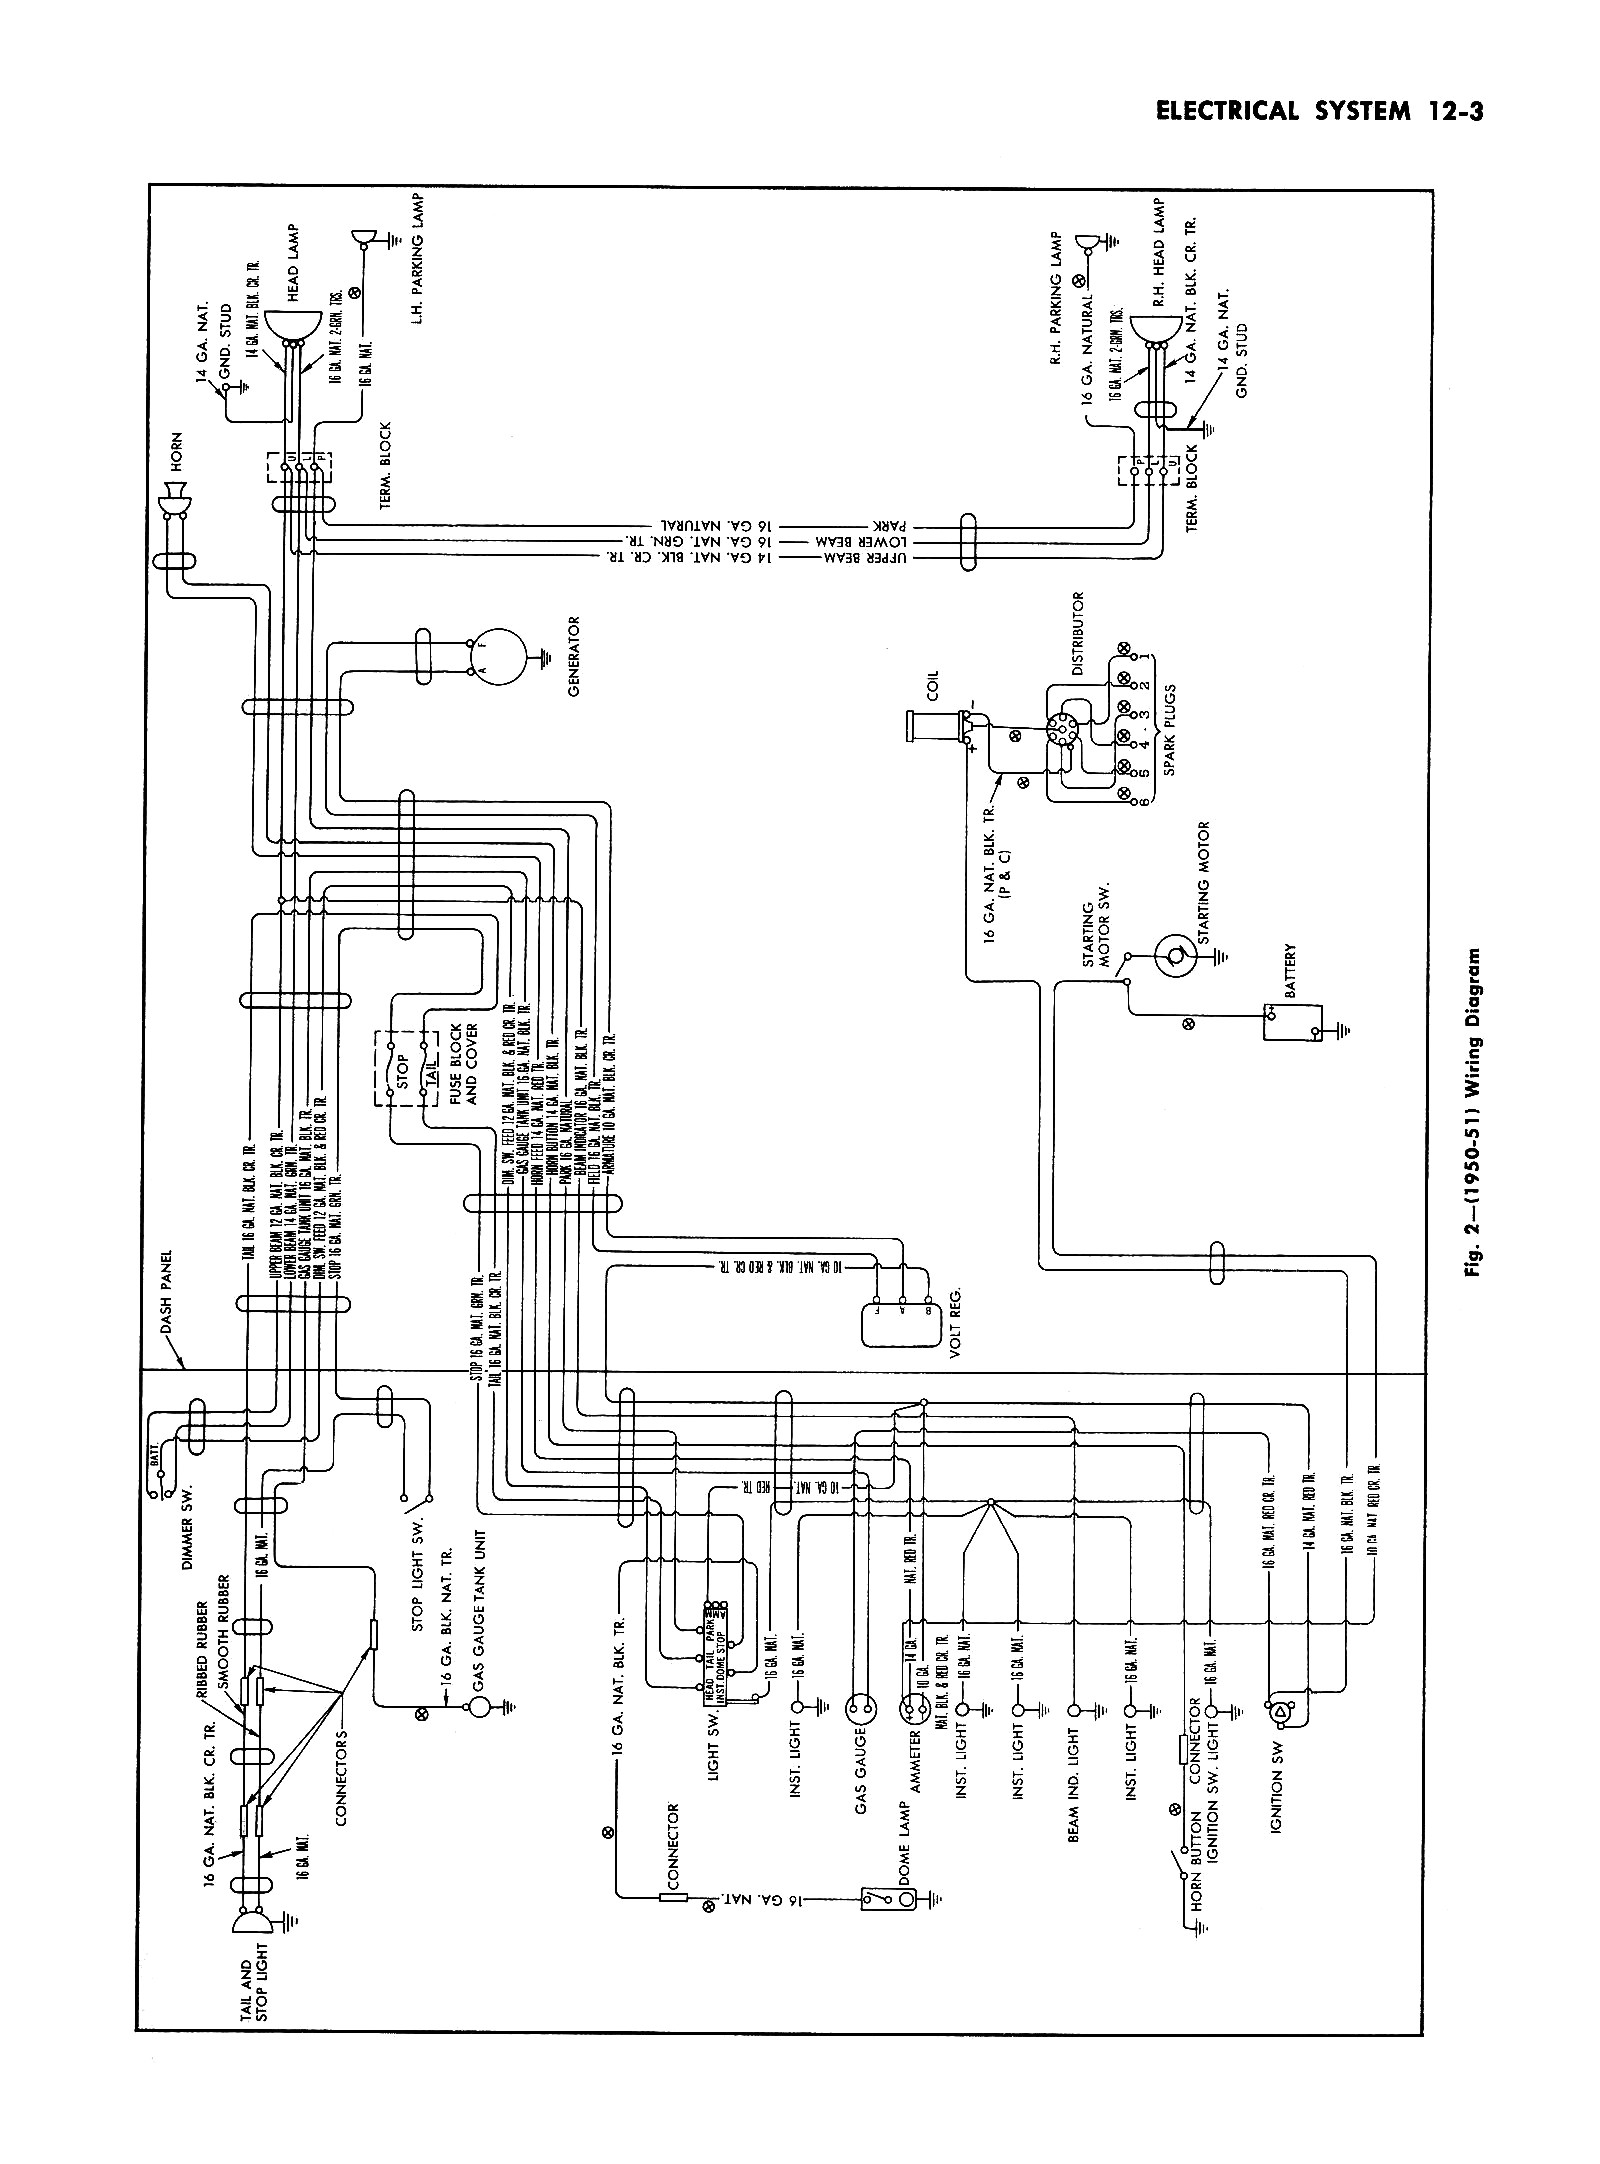 1950 ford car dash diagram  1950  free engine image for